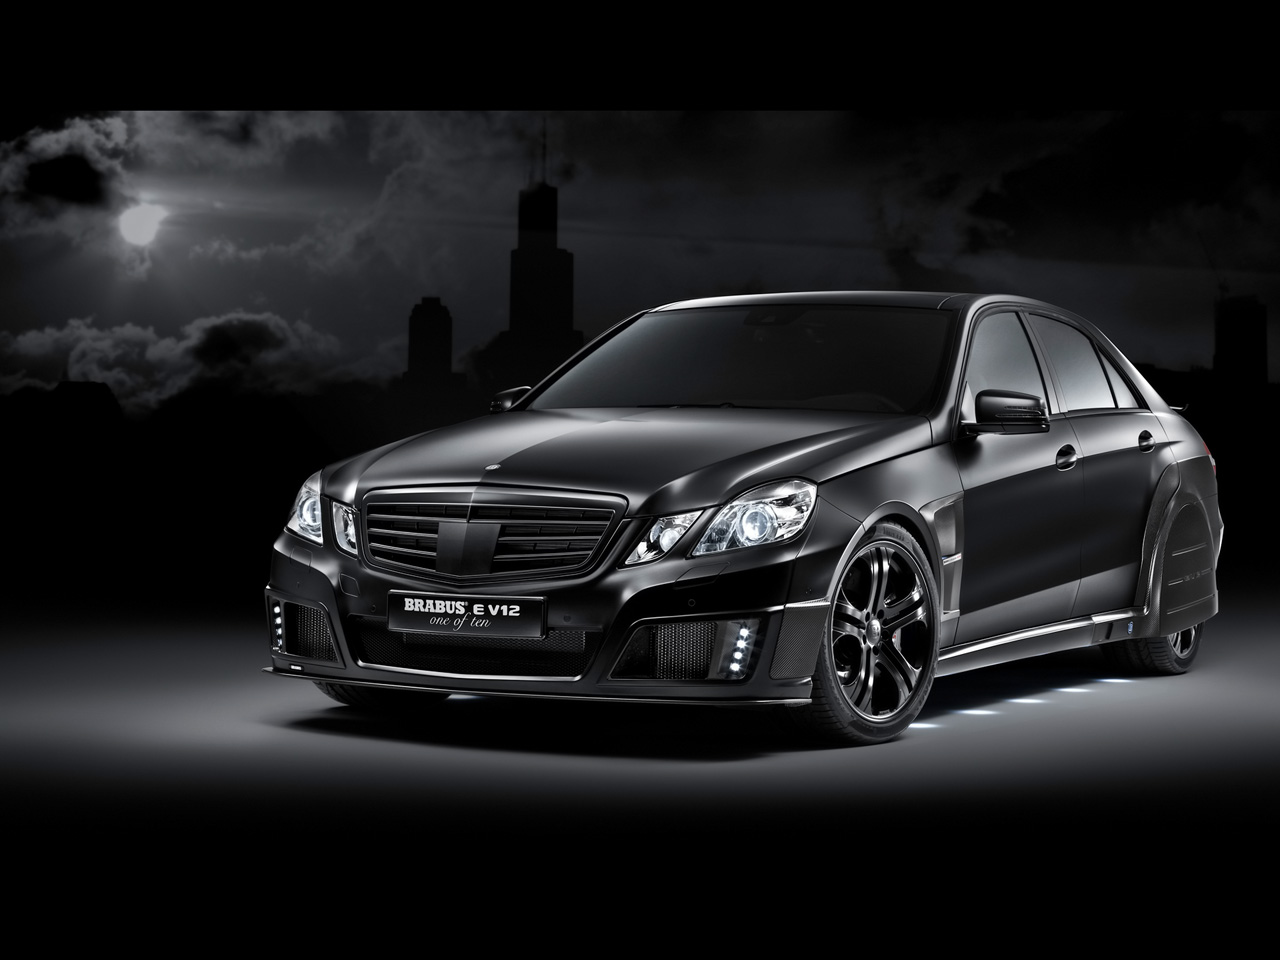 2010 brabus mercedes benz e v12 specs top speed engine